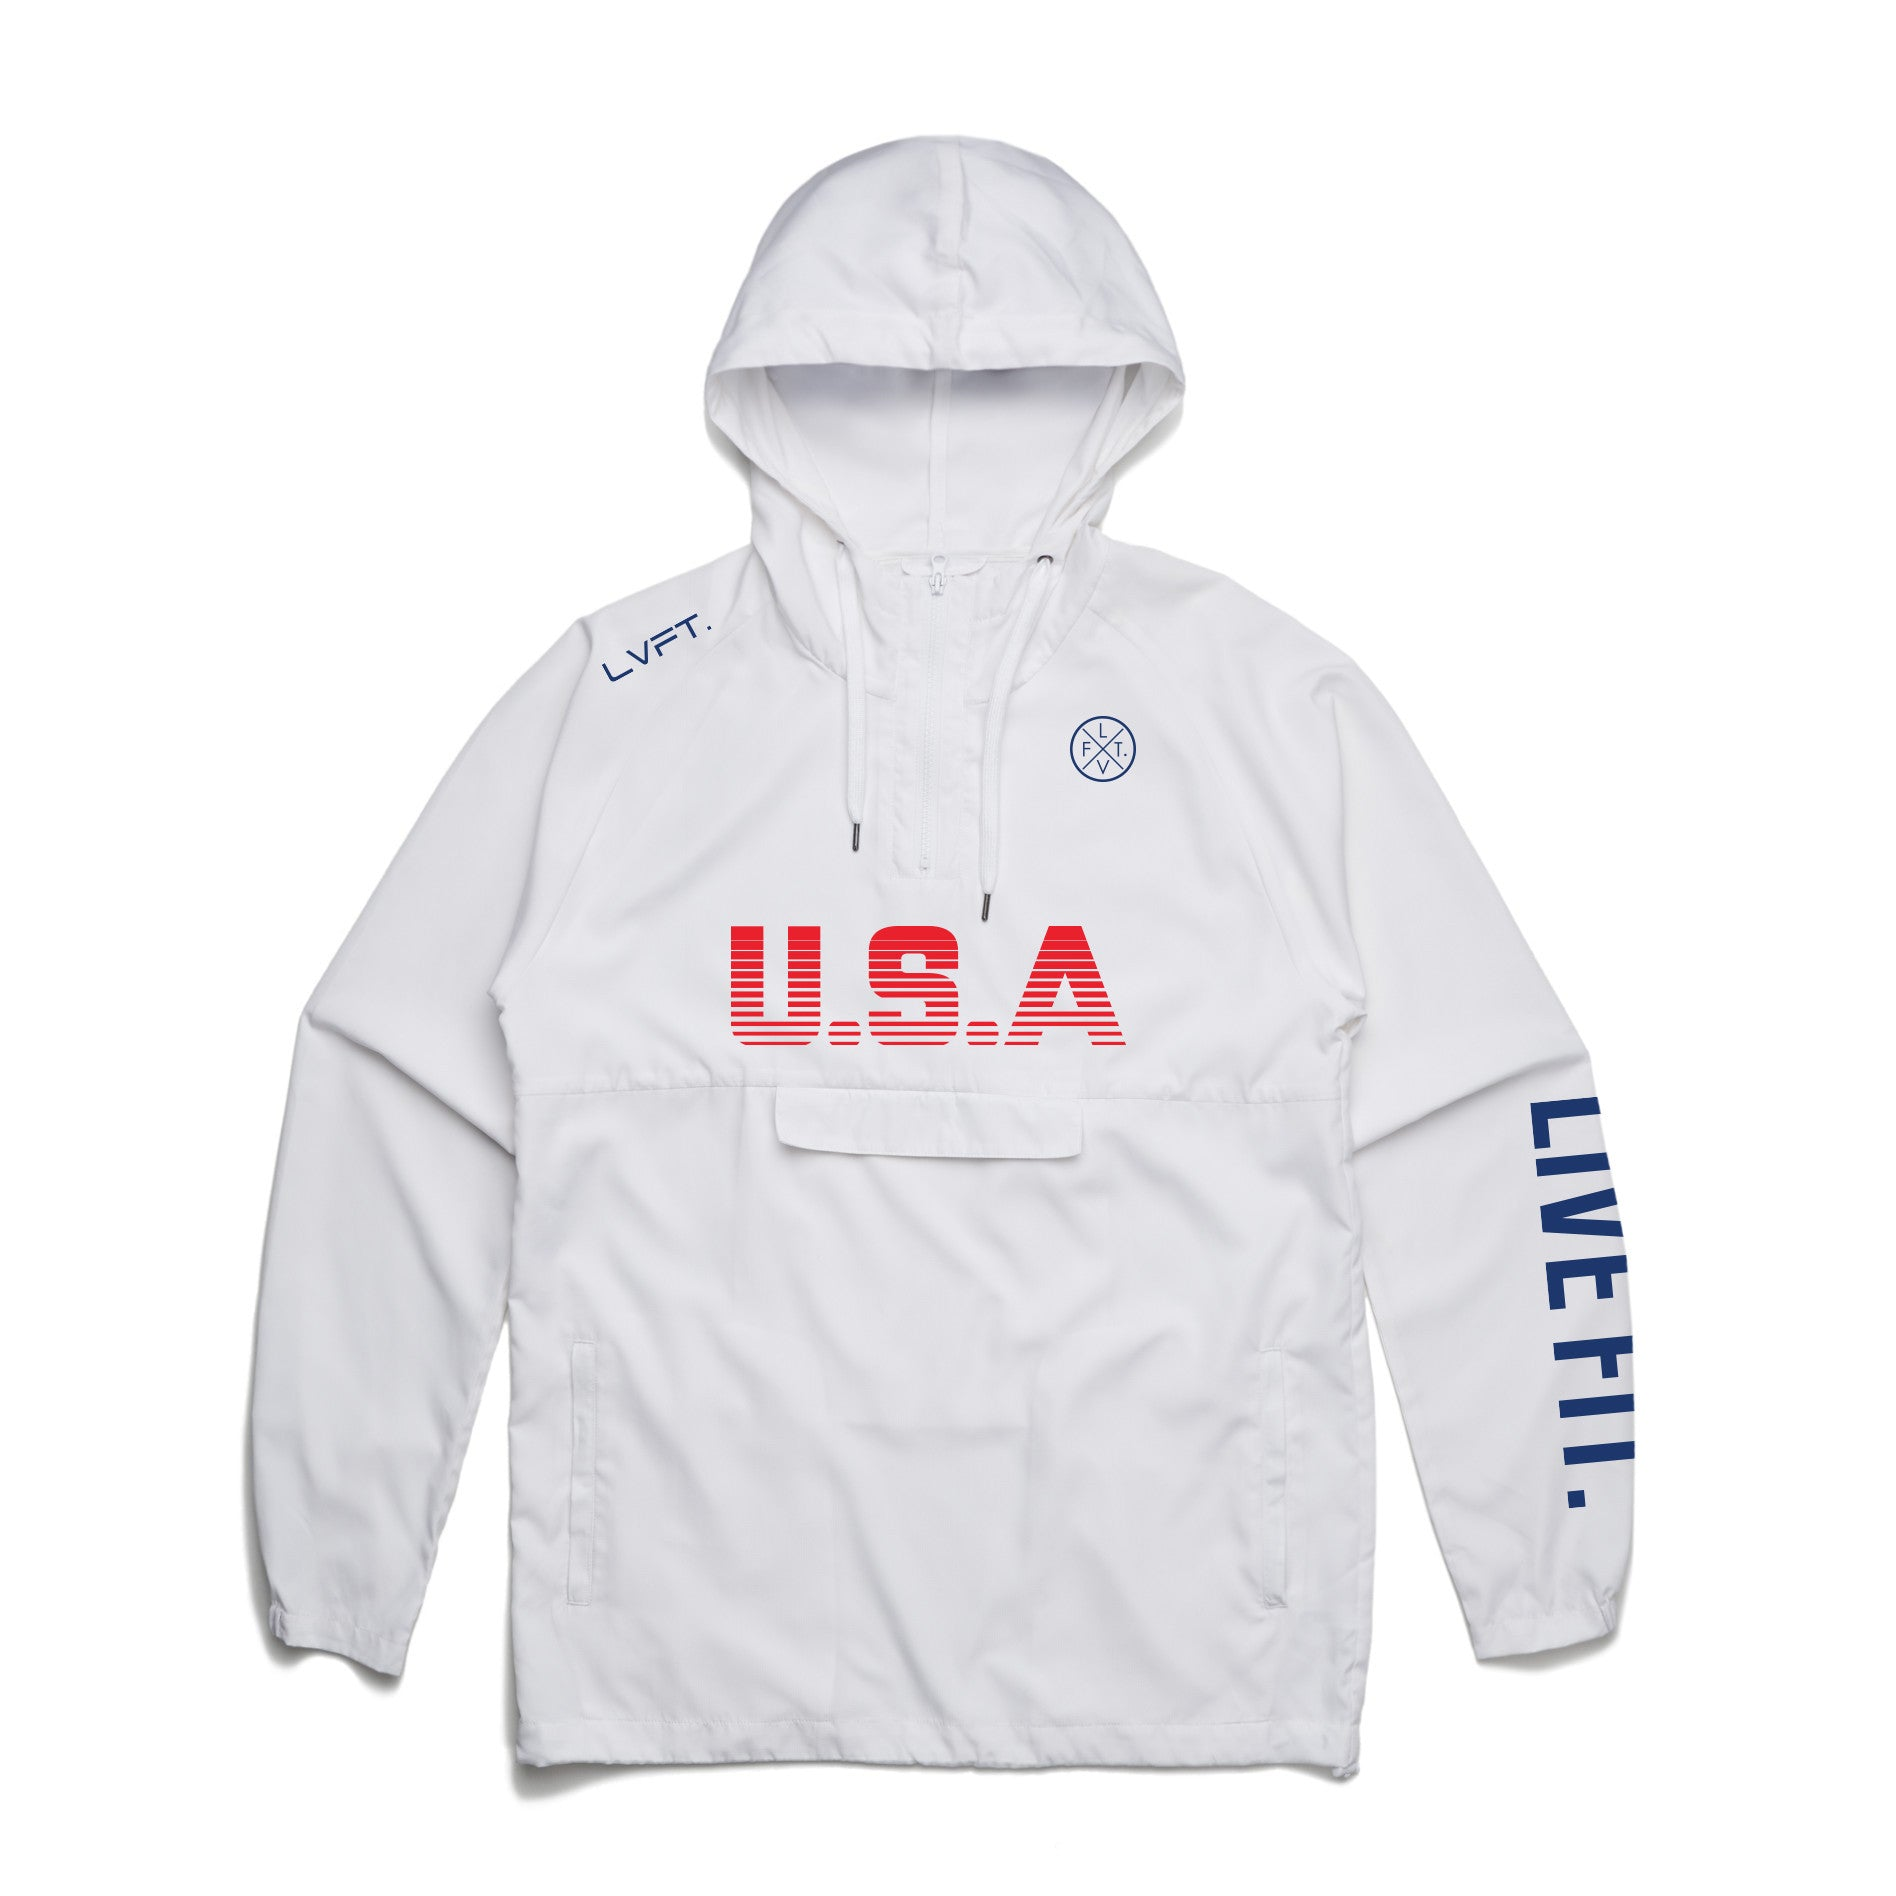 USA Anorak Jacket- White